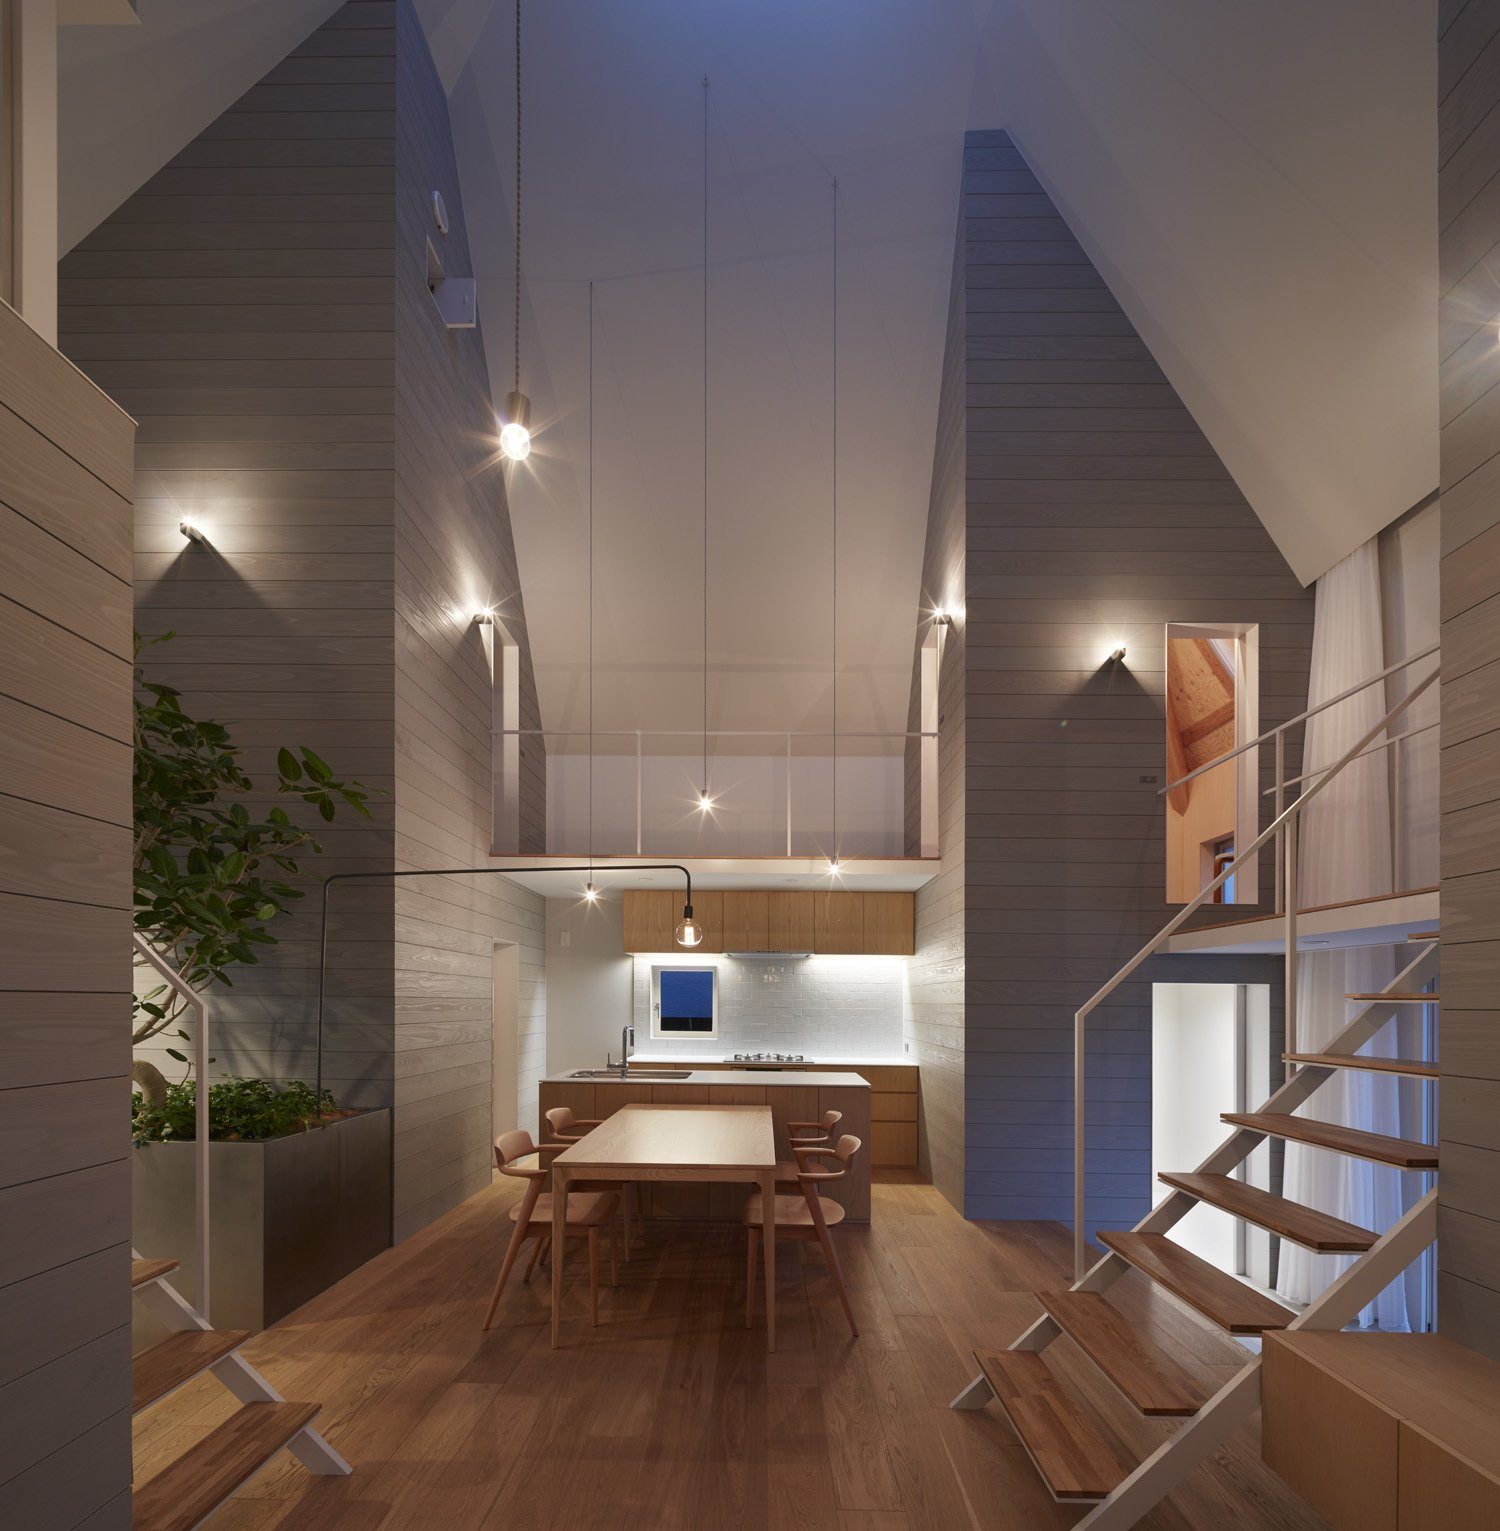 House in Iwakura by Airhouse - Photo 8 of 8